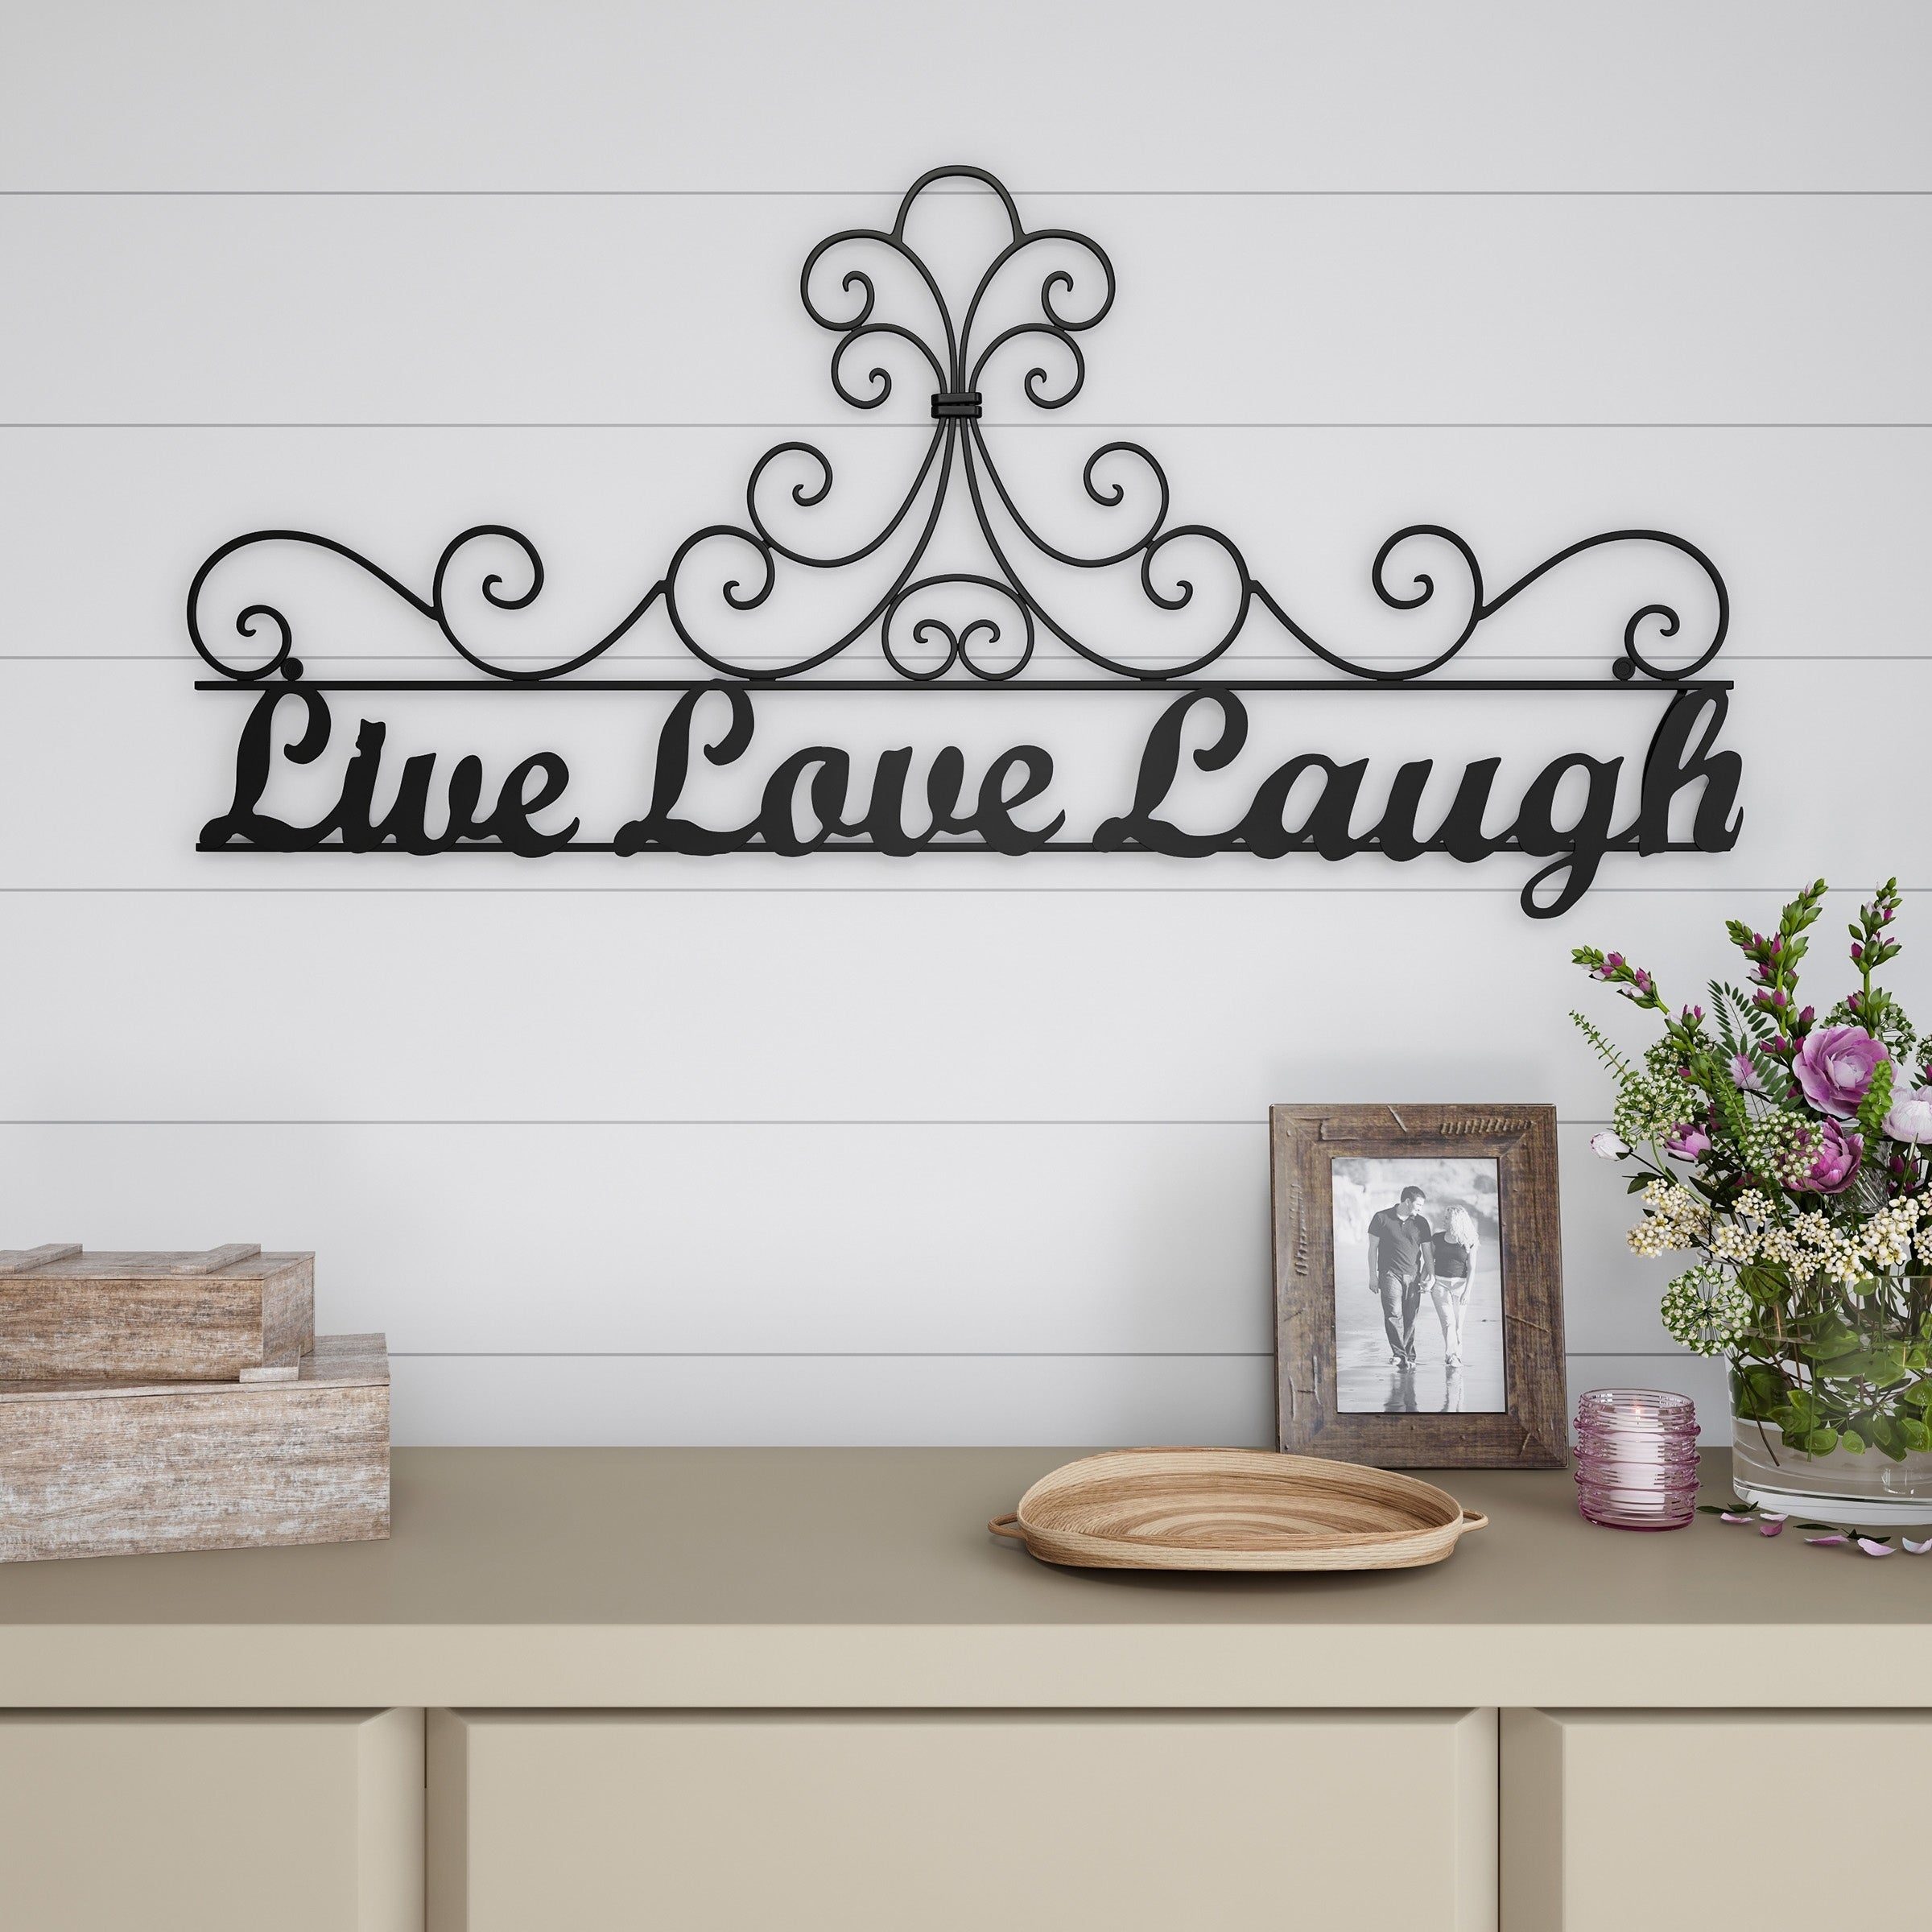 Quotes And Sayings Metal Art | Find Great Art Gallery Deals With Regard To Farm Metal Wall Rack And 3 Tin Pot With Hanger Wall Decor (View 19 of 30)